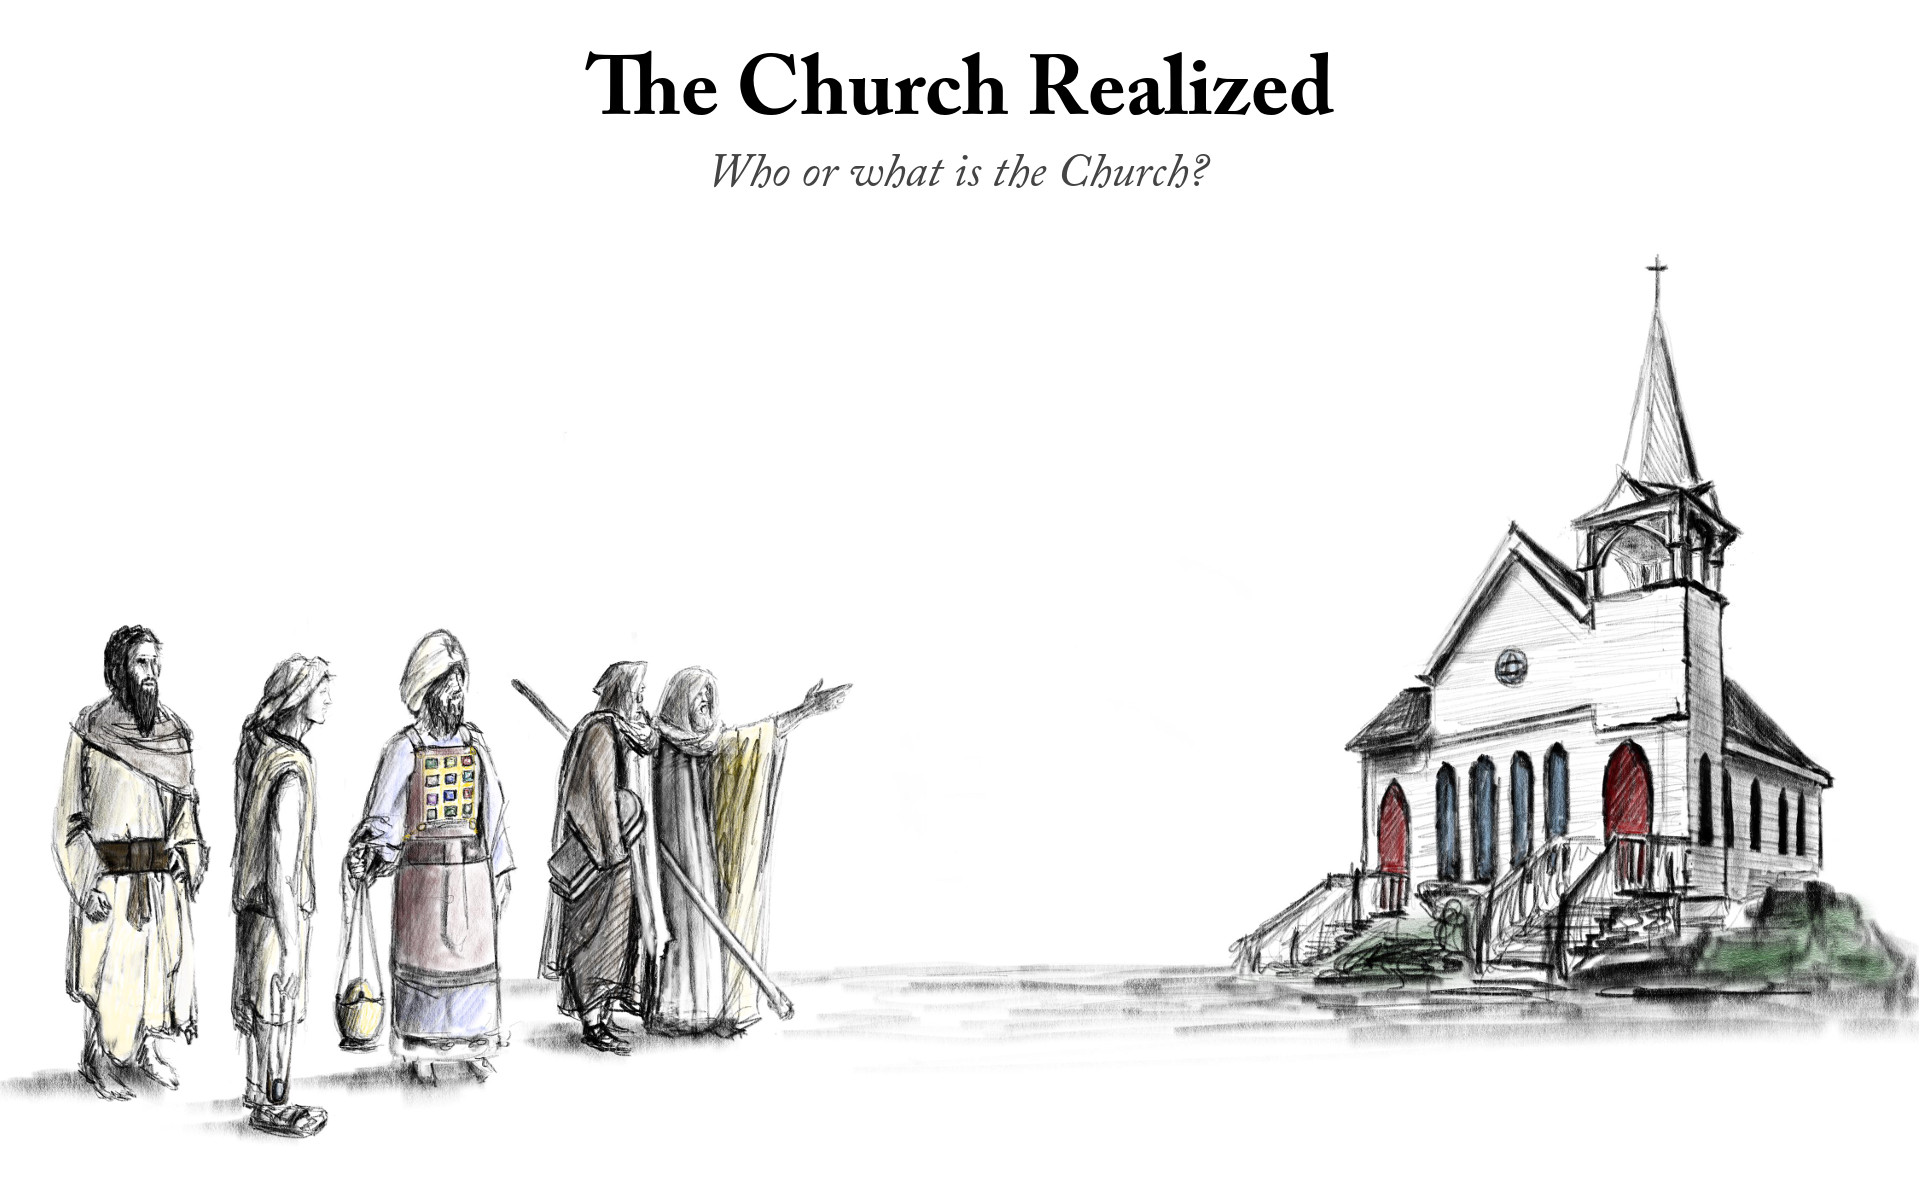 The Church Realized - Who or what is the Church?